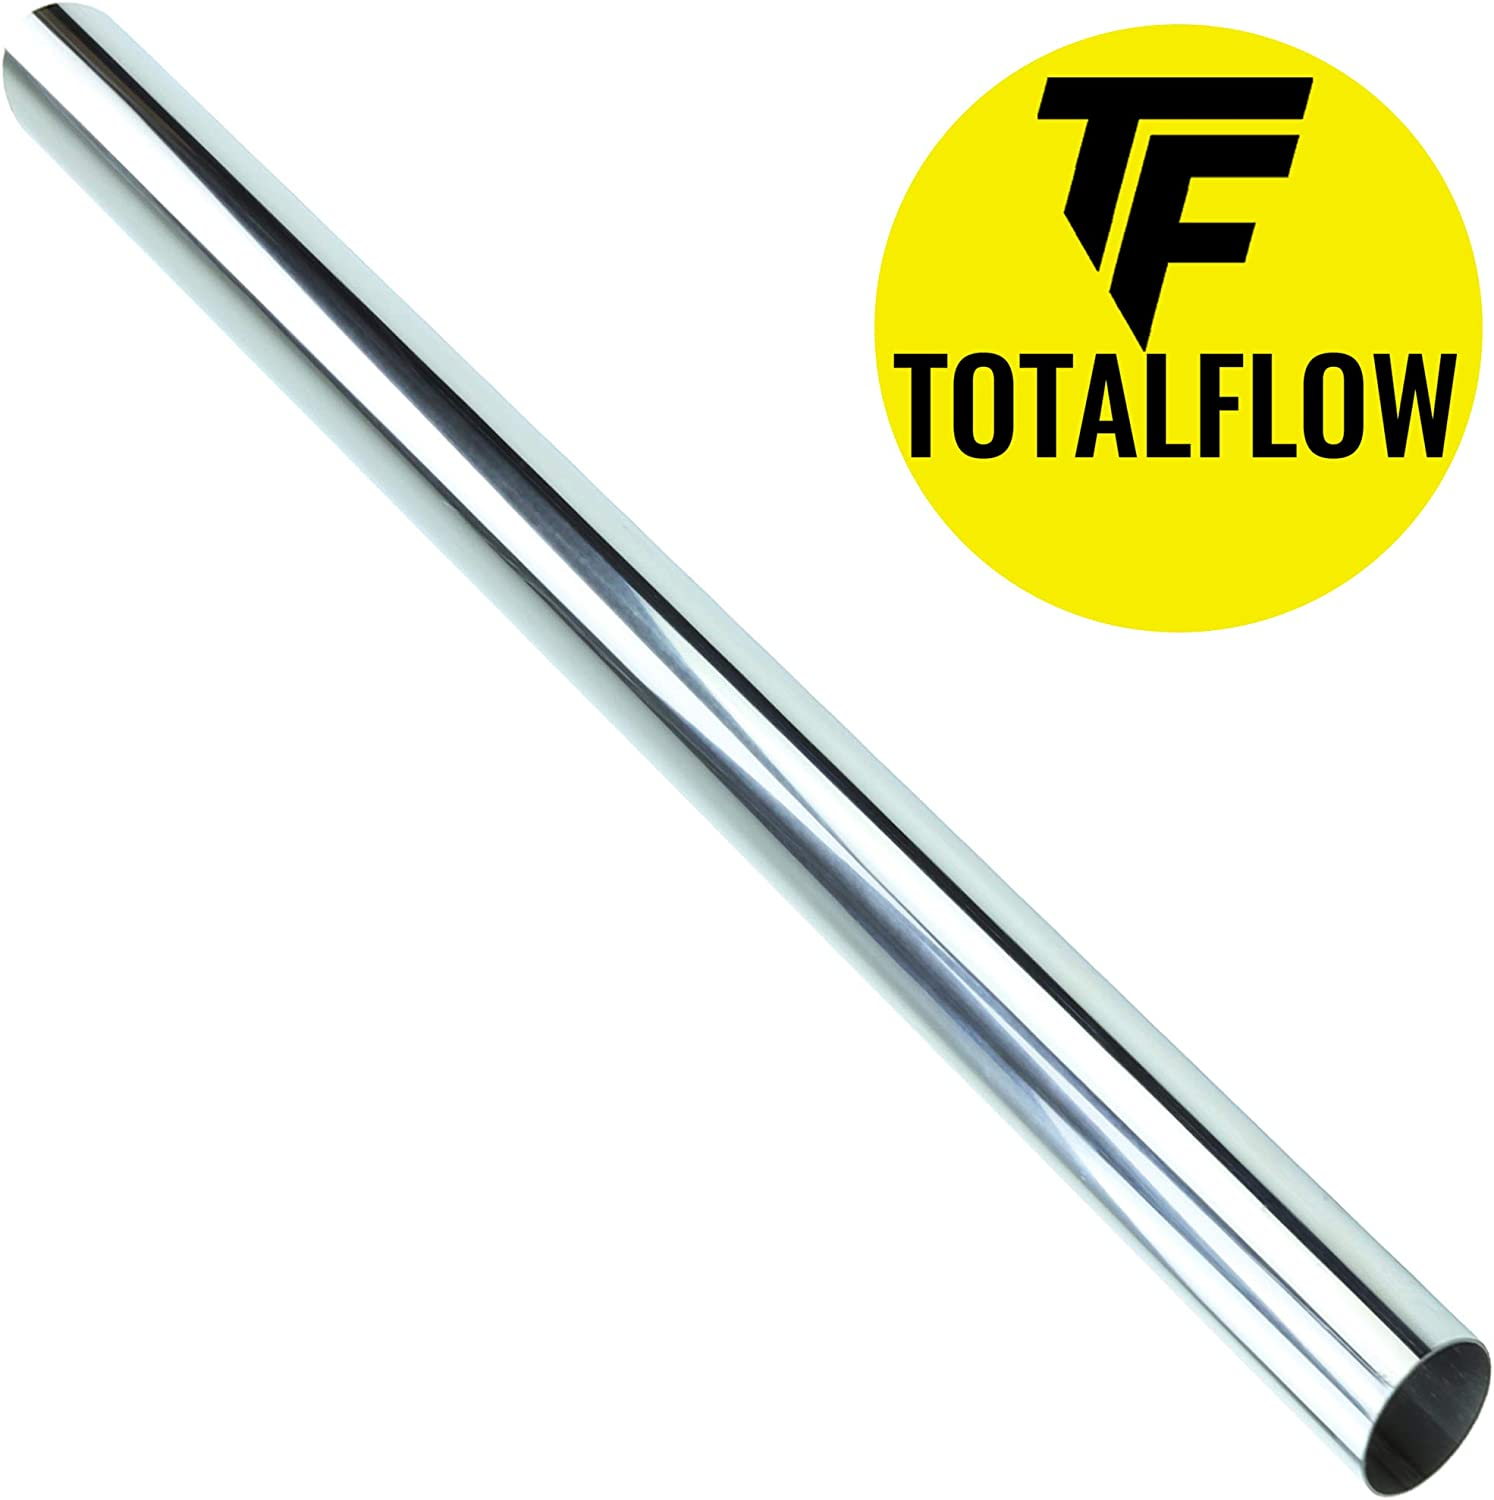 4 Inch-OD TOTALFLOW 20 Inch Length 20-304-400-15 Universal Straight Exhaust Pipe Extension 304 Stainless Steel-Tube Replacement